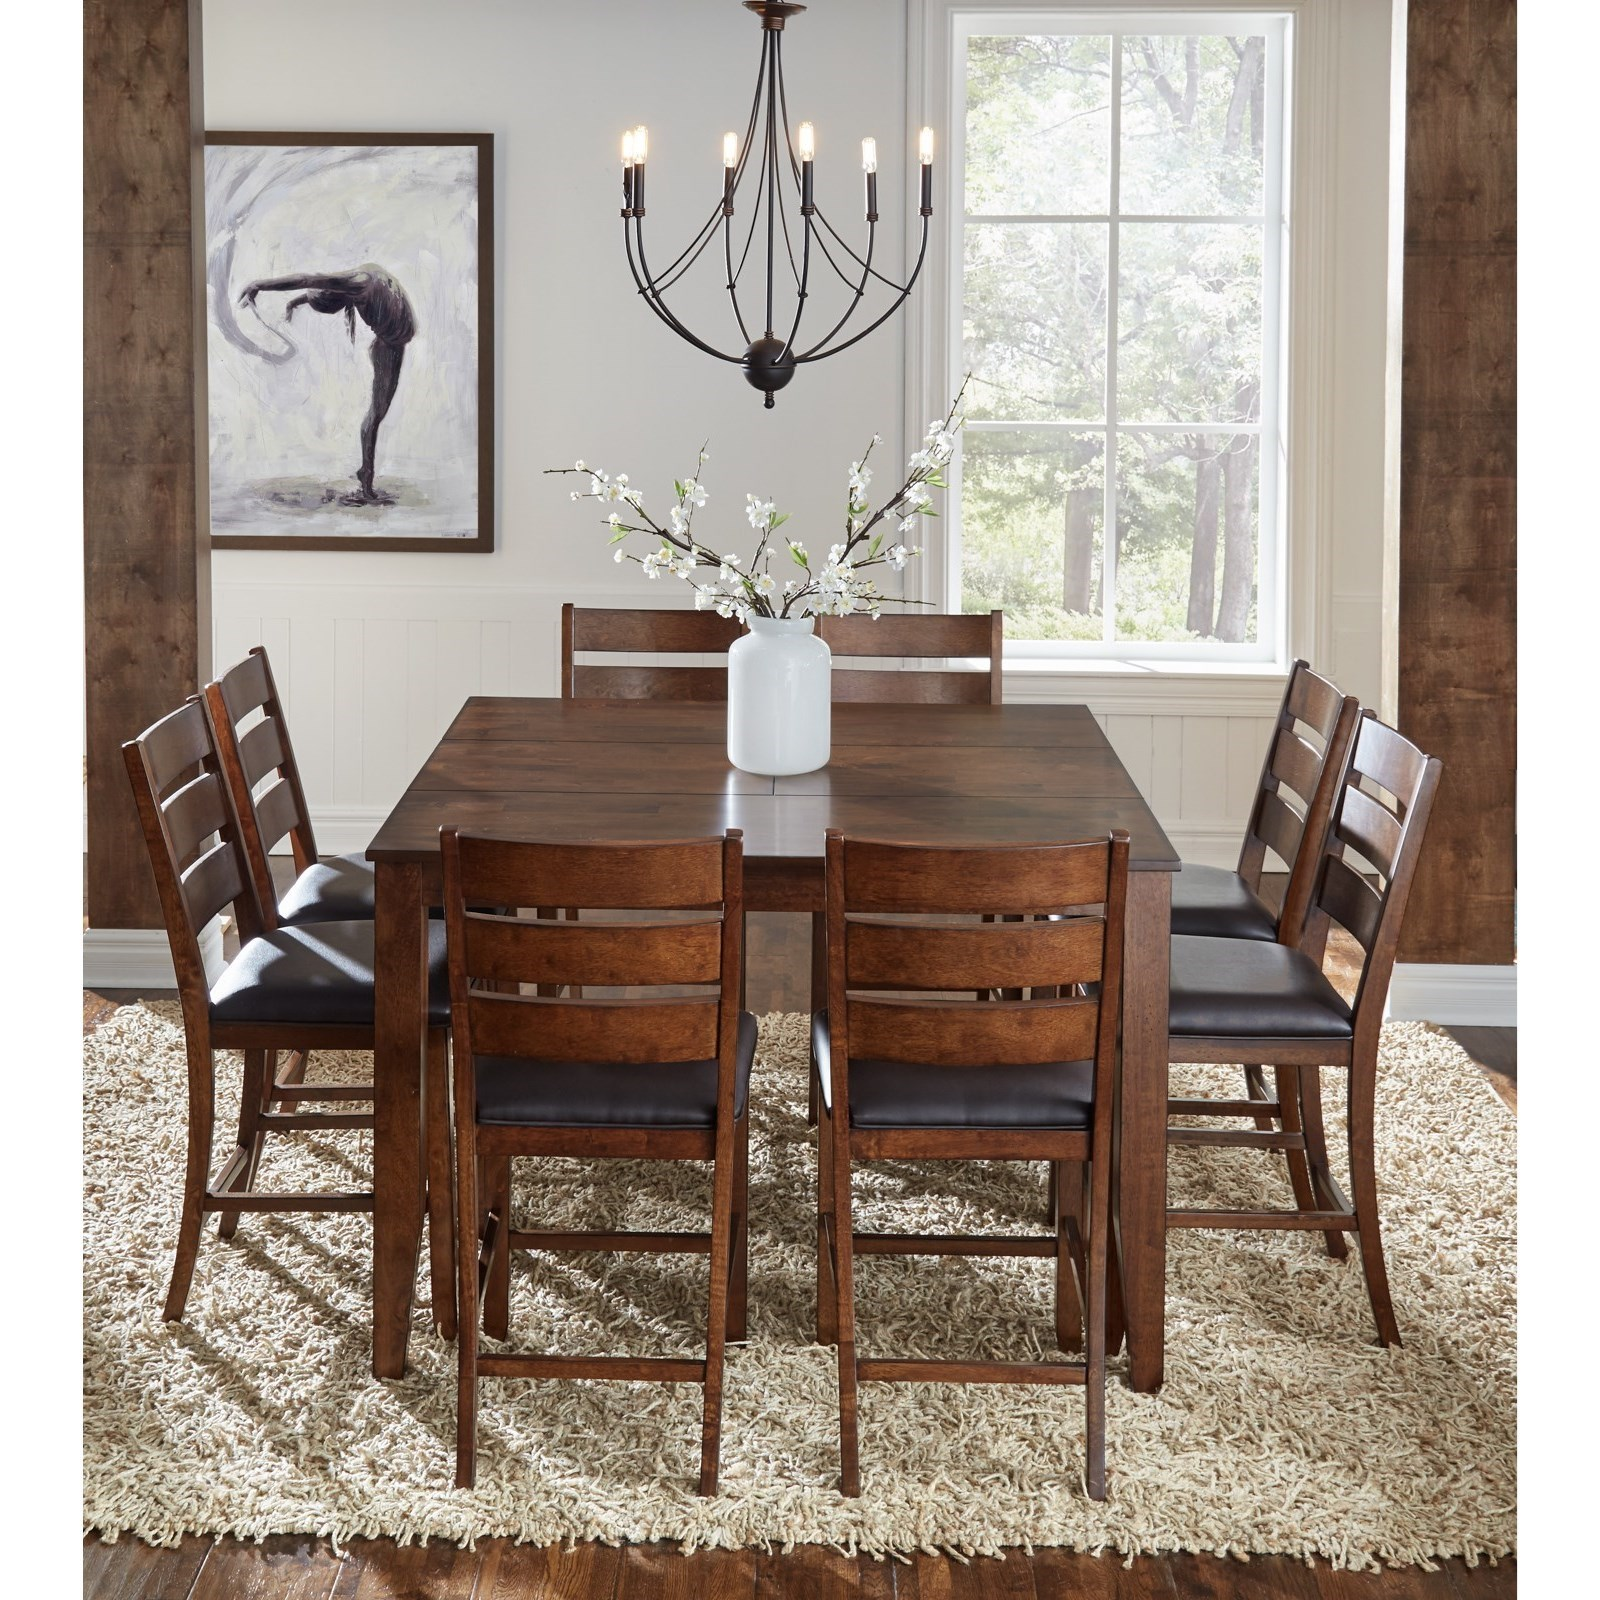 AAmerica Mason 9 Piece Gathering Height Table and Chair  : products2Faamerica2Fcolor2Fmason 1147973043mas ma 6 75 02B8xmas ma 3 55 k b1jpgscalebothampwidth500ampheight500ampfsharpen25ampdown from www.valuecitynj.com size 500 x 500 jpeg 79kB